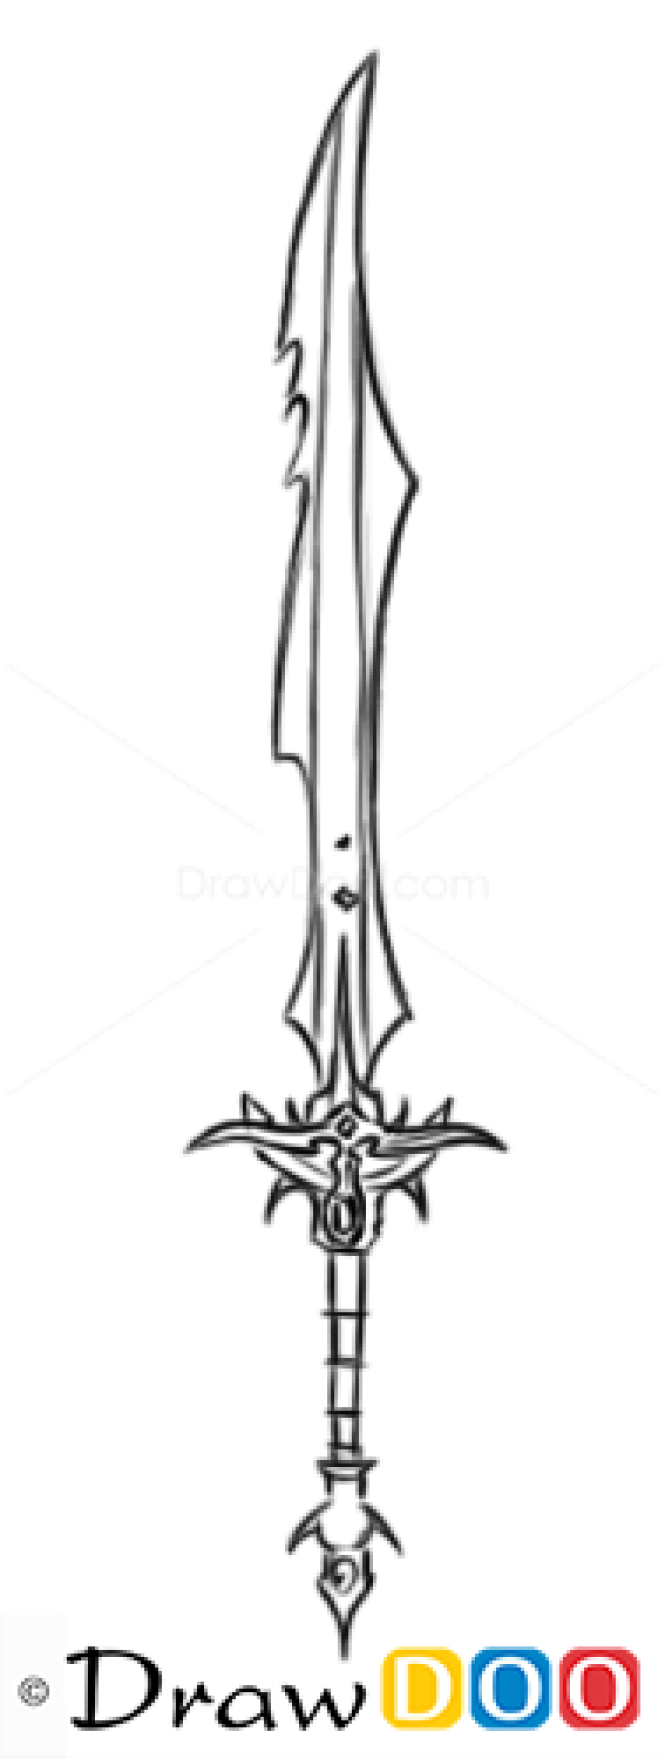 How To Draw Knight Sword Cold Arms